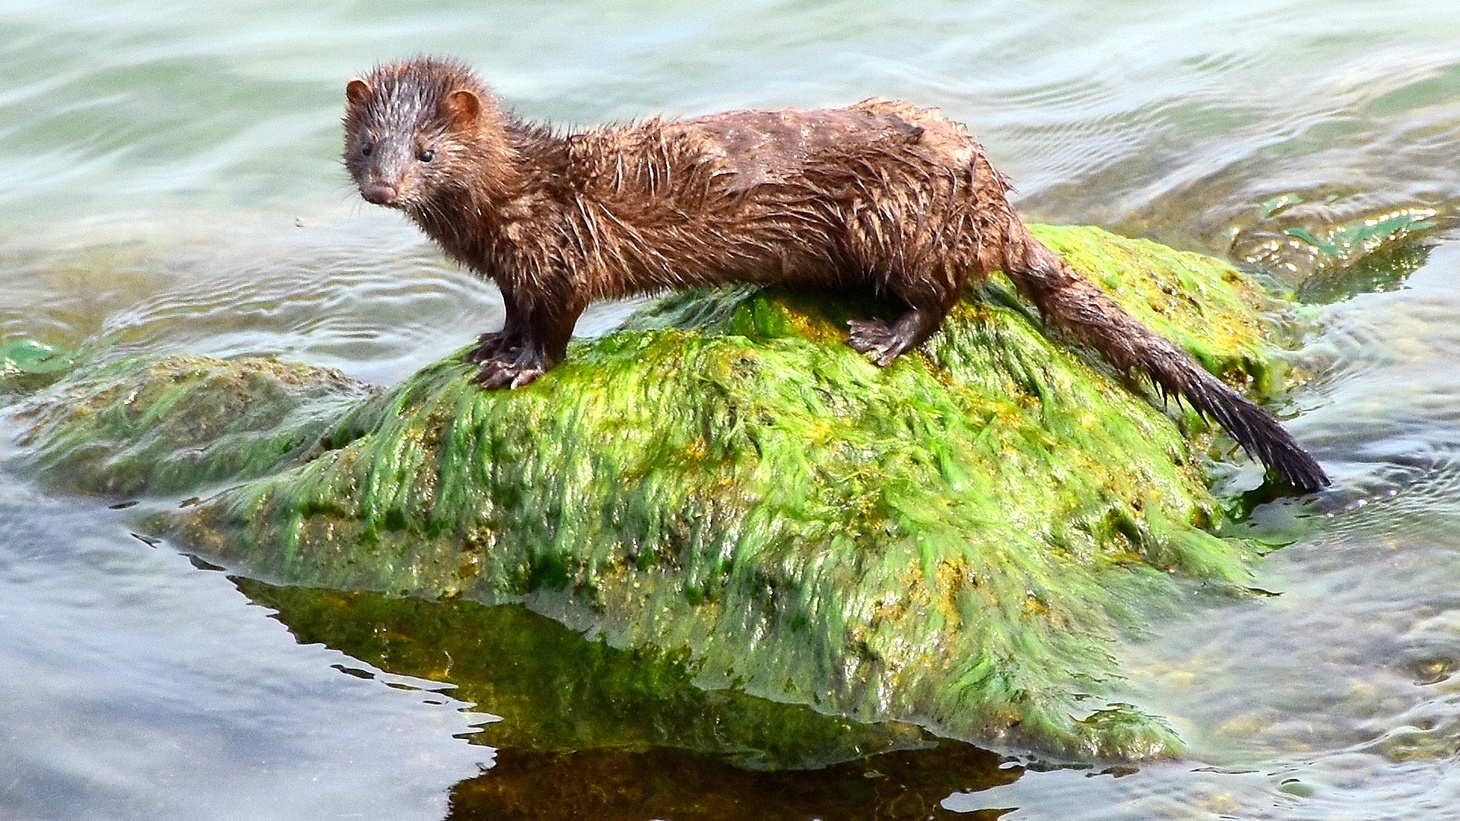 Minks are susceptible to COVID-19. This week, the U.S. Department of Agriculture reported a positive case found in a wild mink in Utah.